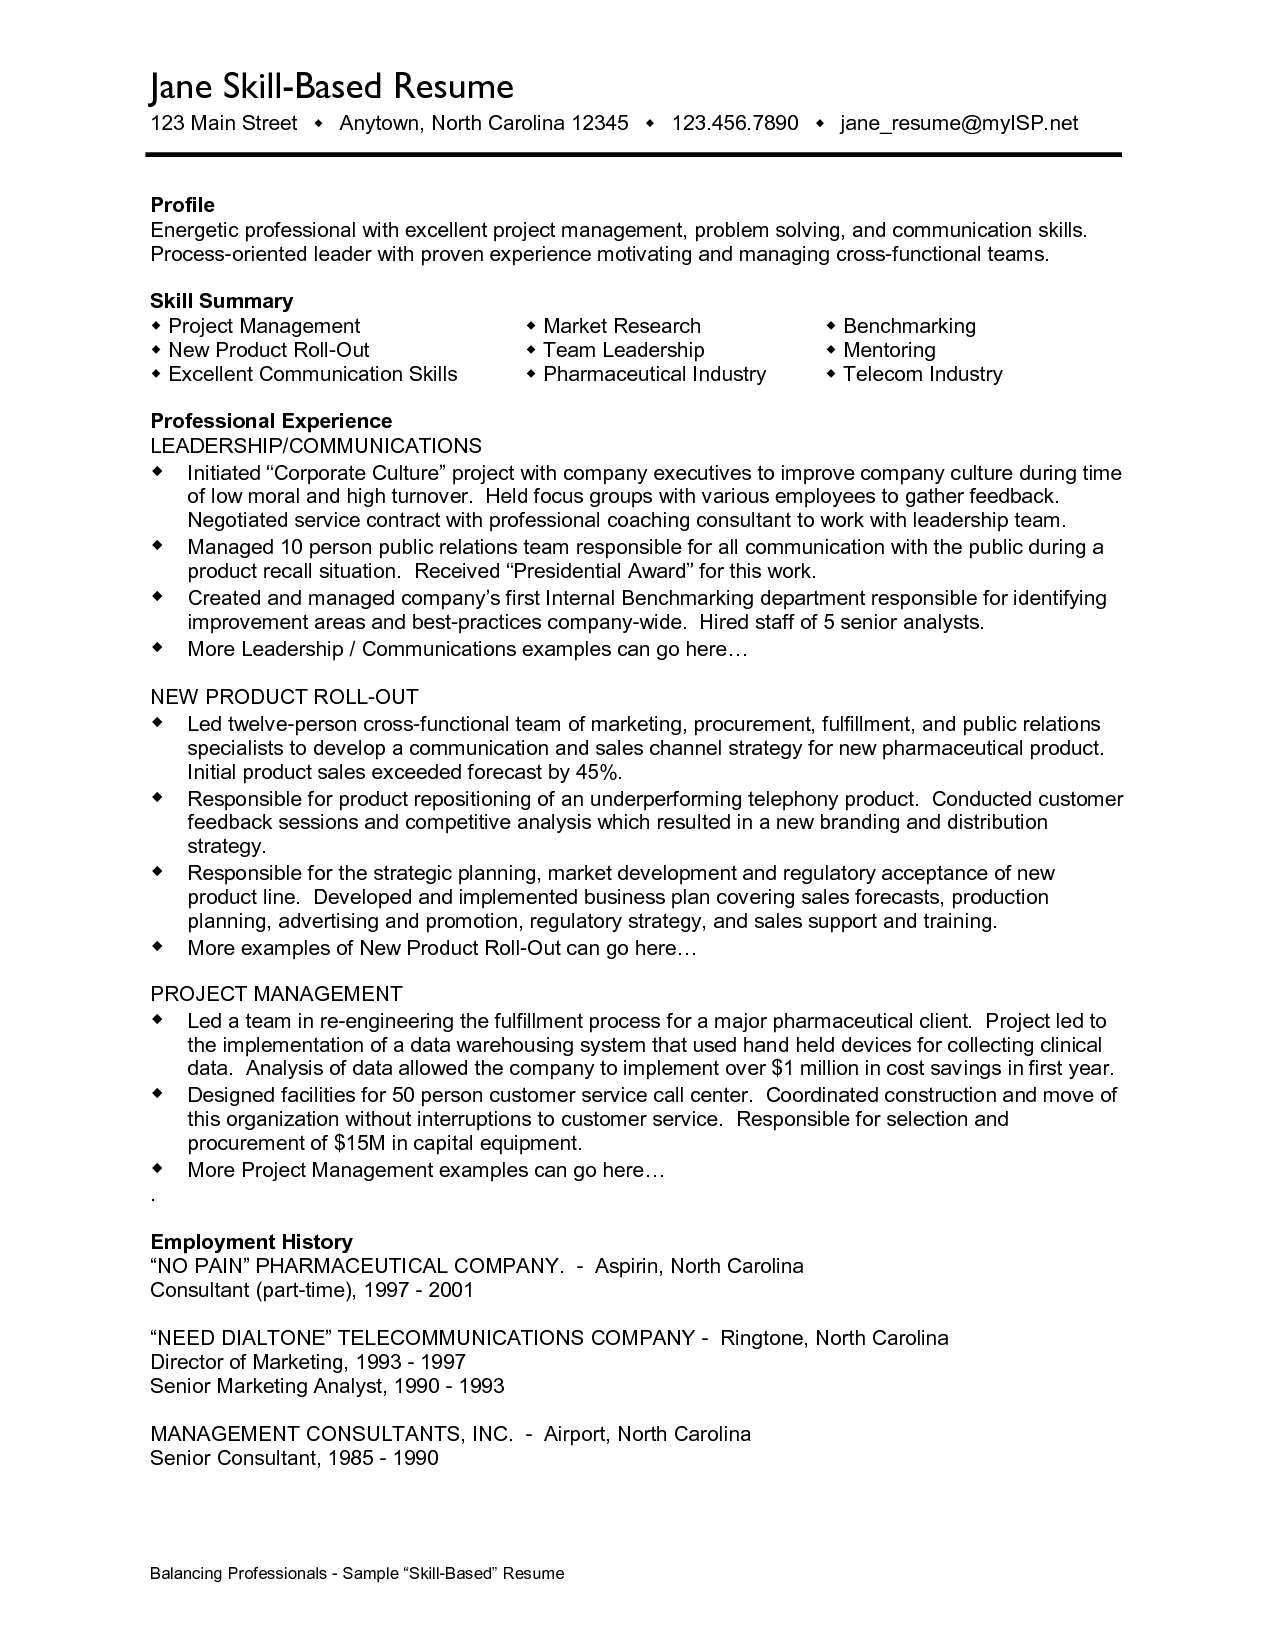 Skill Based Resume Examples | Professional Skills Sample Resume